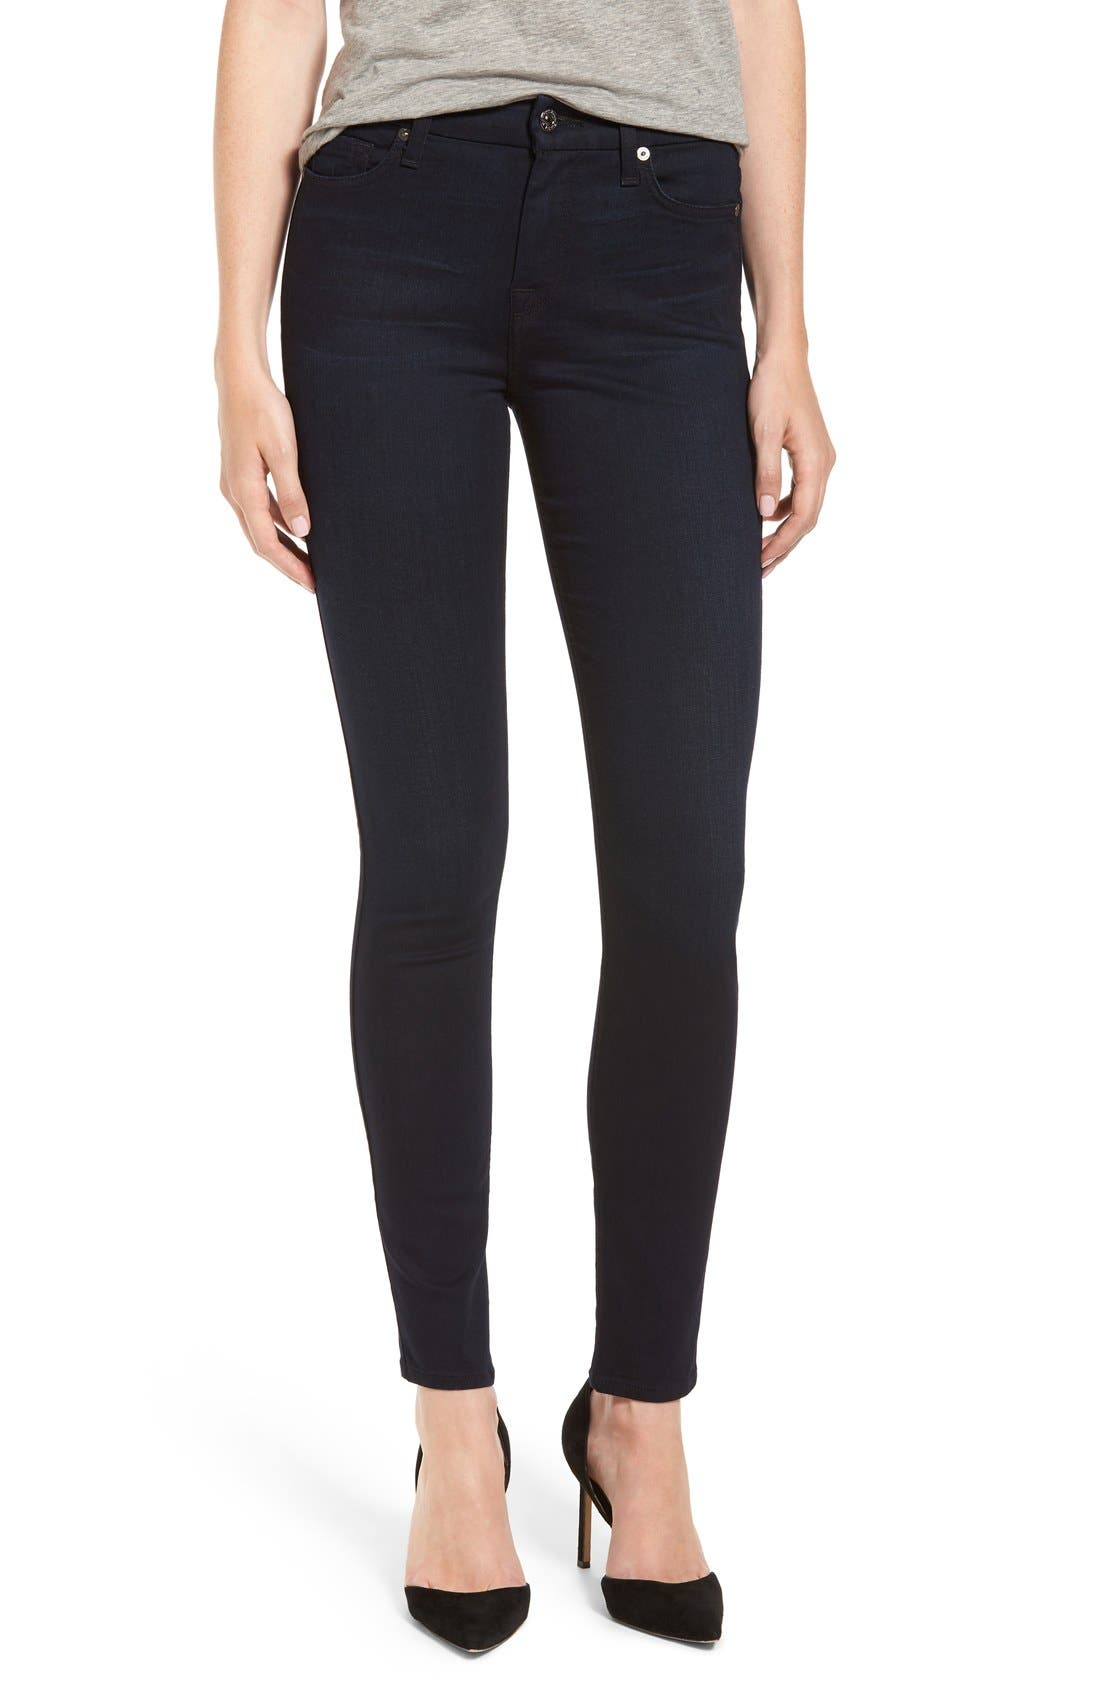 Main Image - 7 For All Mankind b(air) High Waist Skinny Jeans (Blue/Black River Thames)